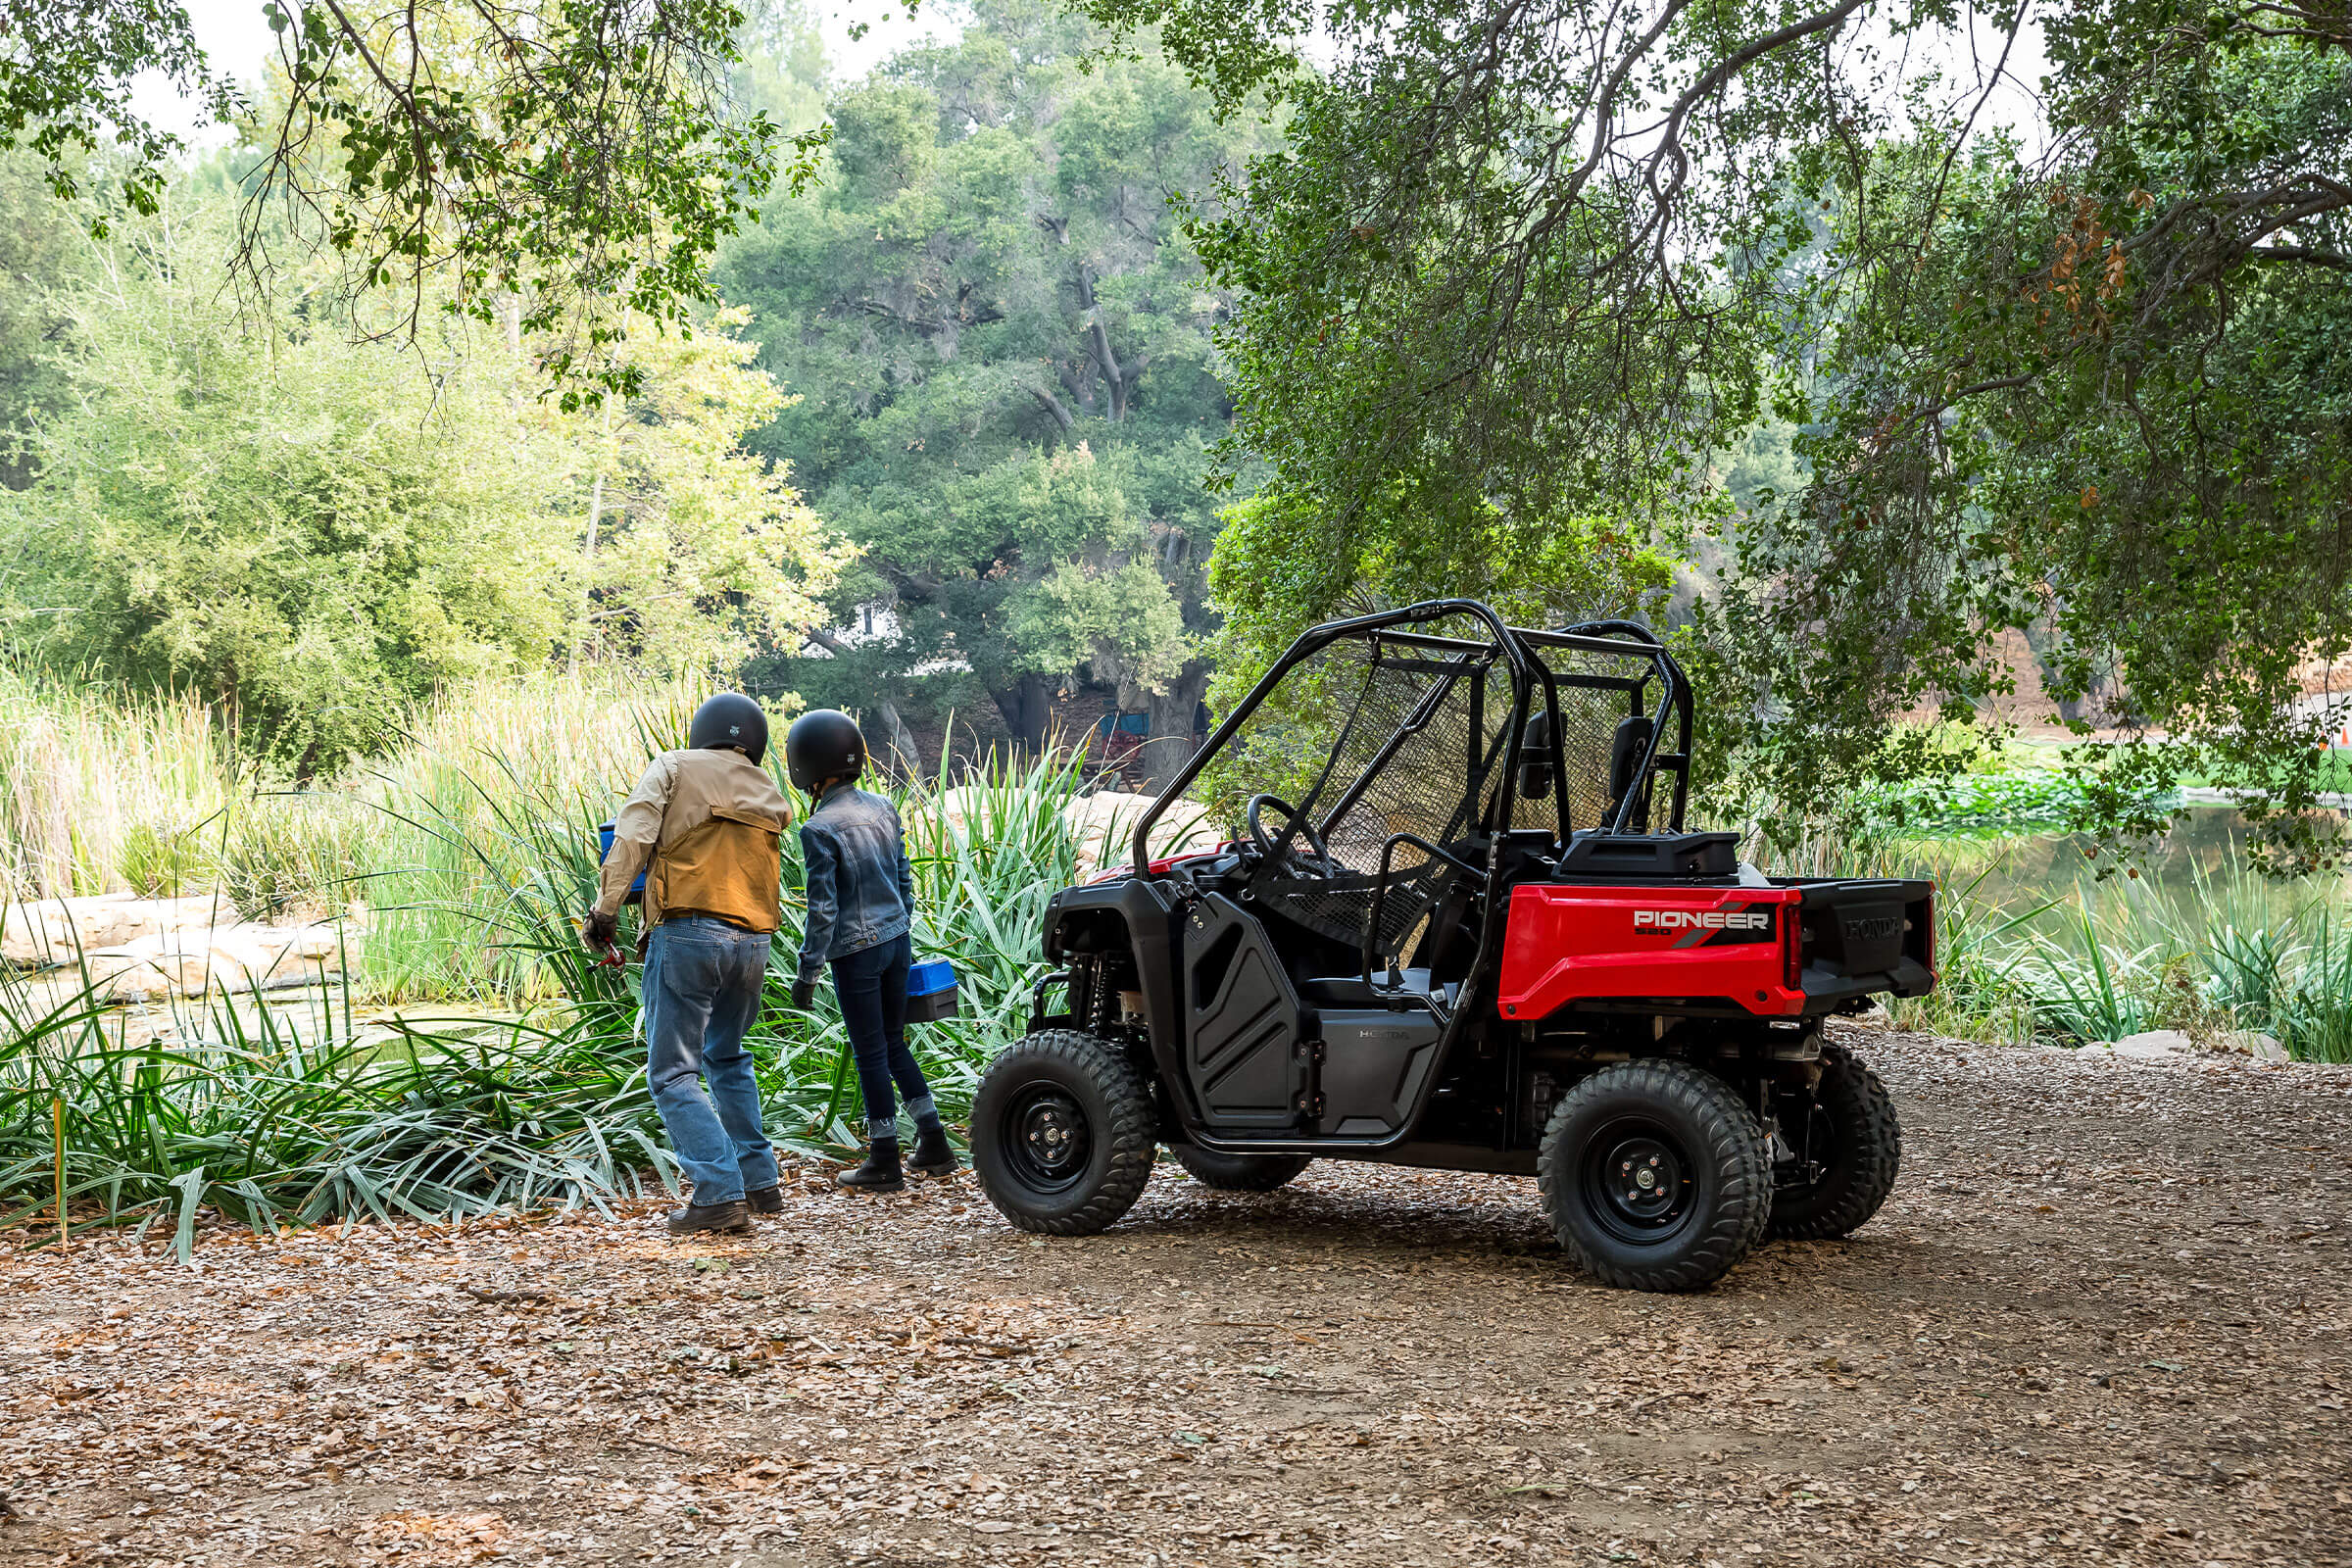 2021 Honda Pioneer 520 in Victorville, California - Photo 2